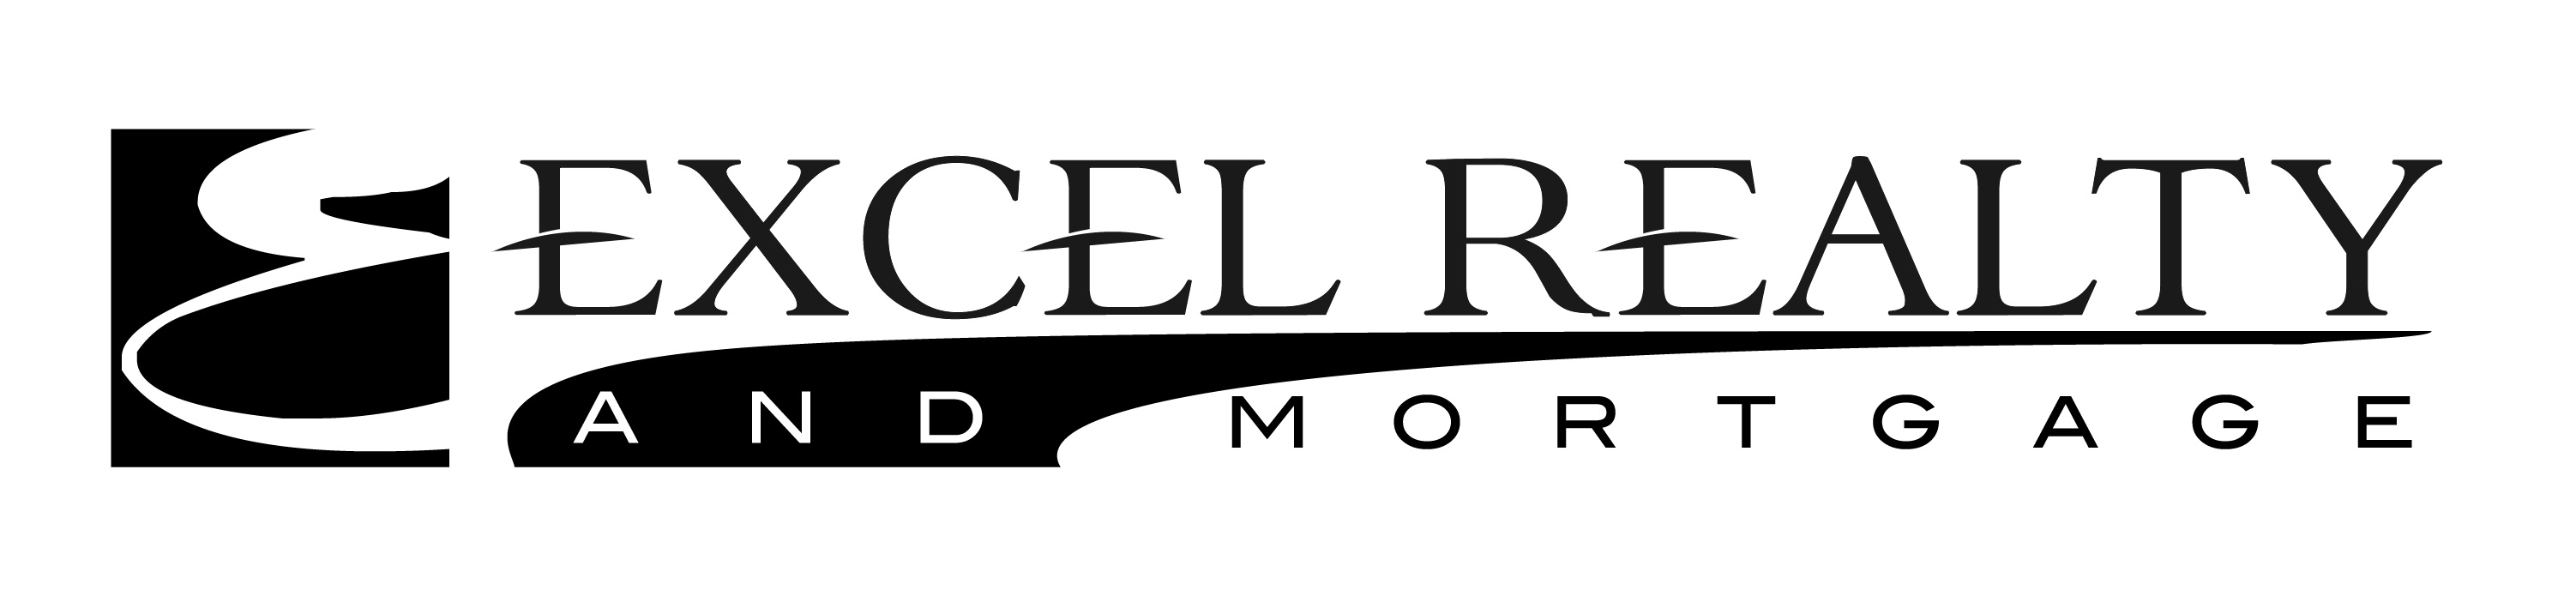 teamerm real estate  excel realty and mortgage homes